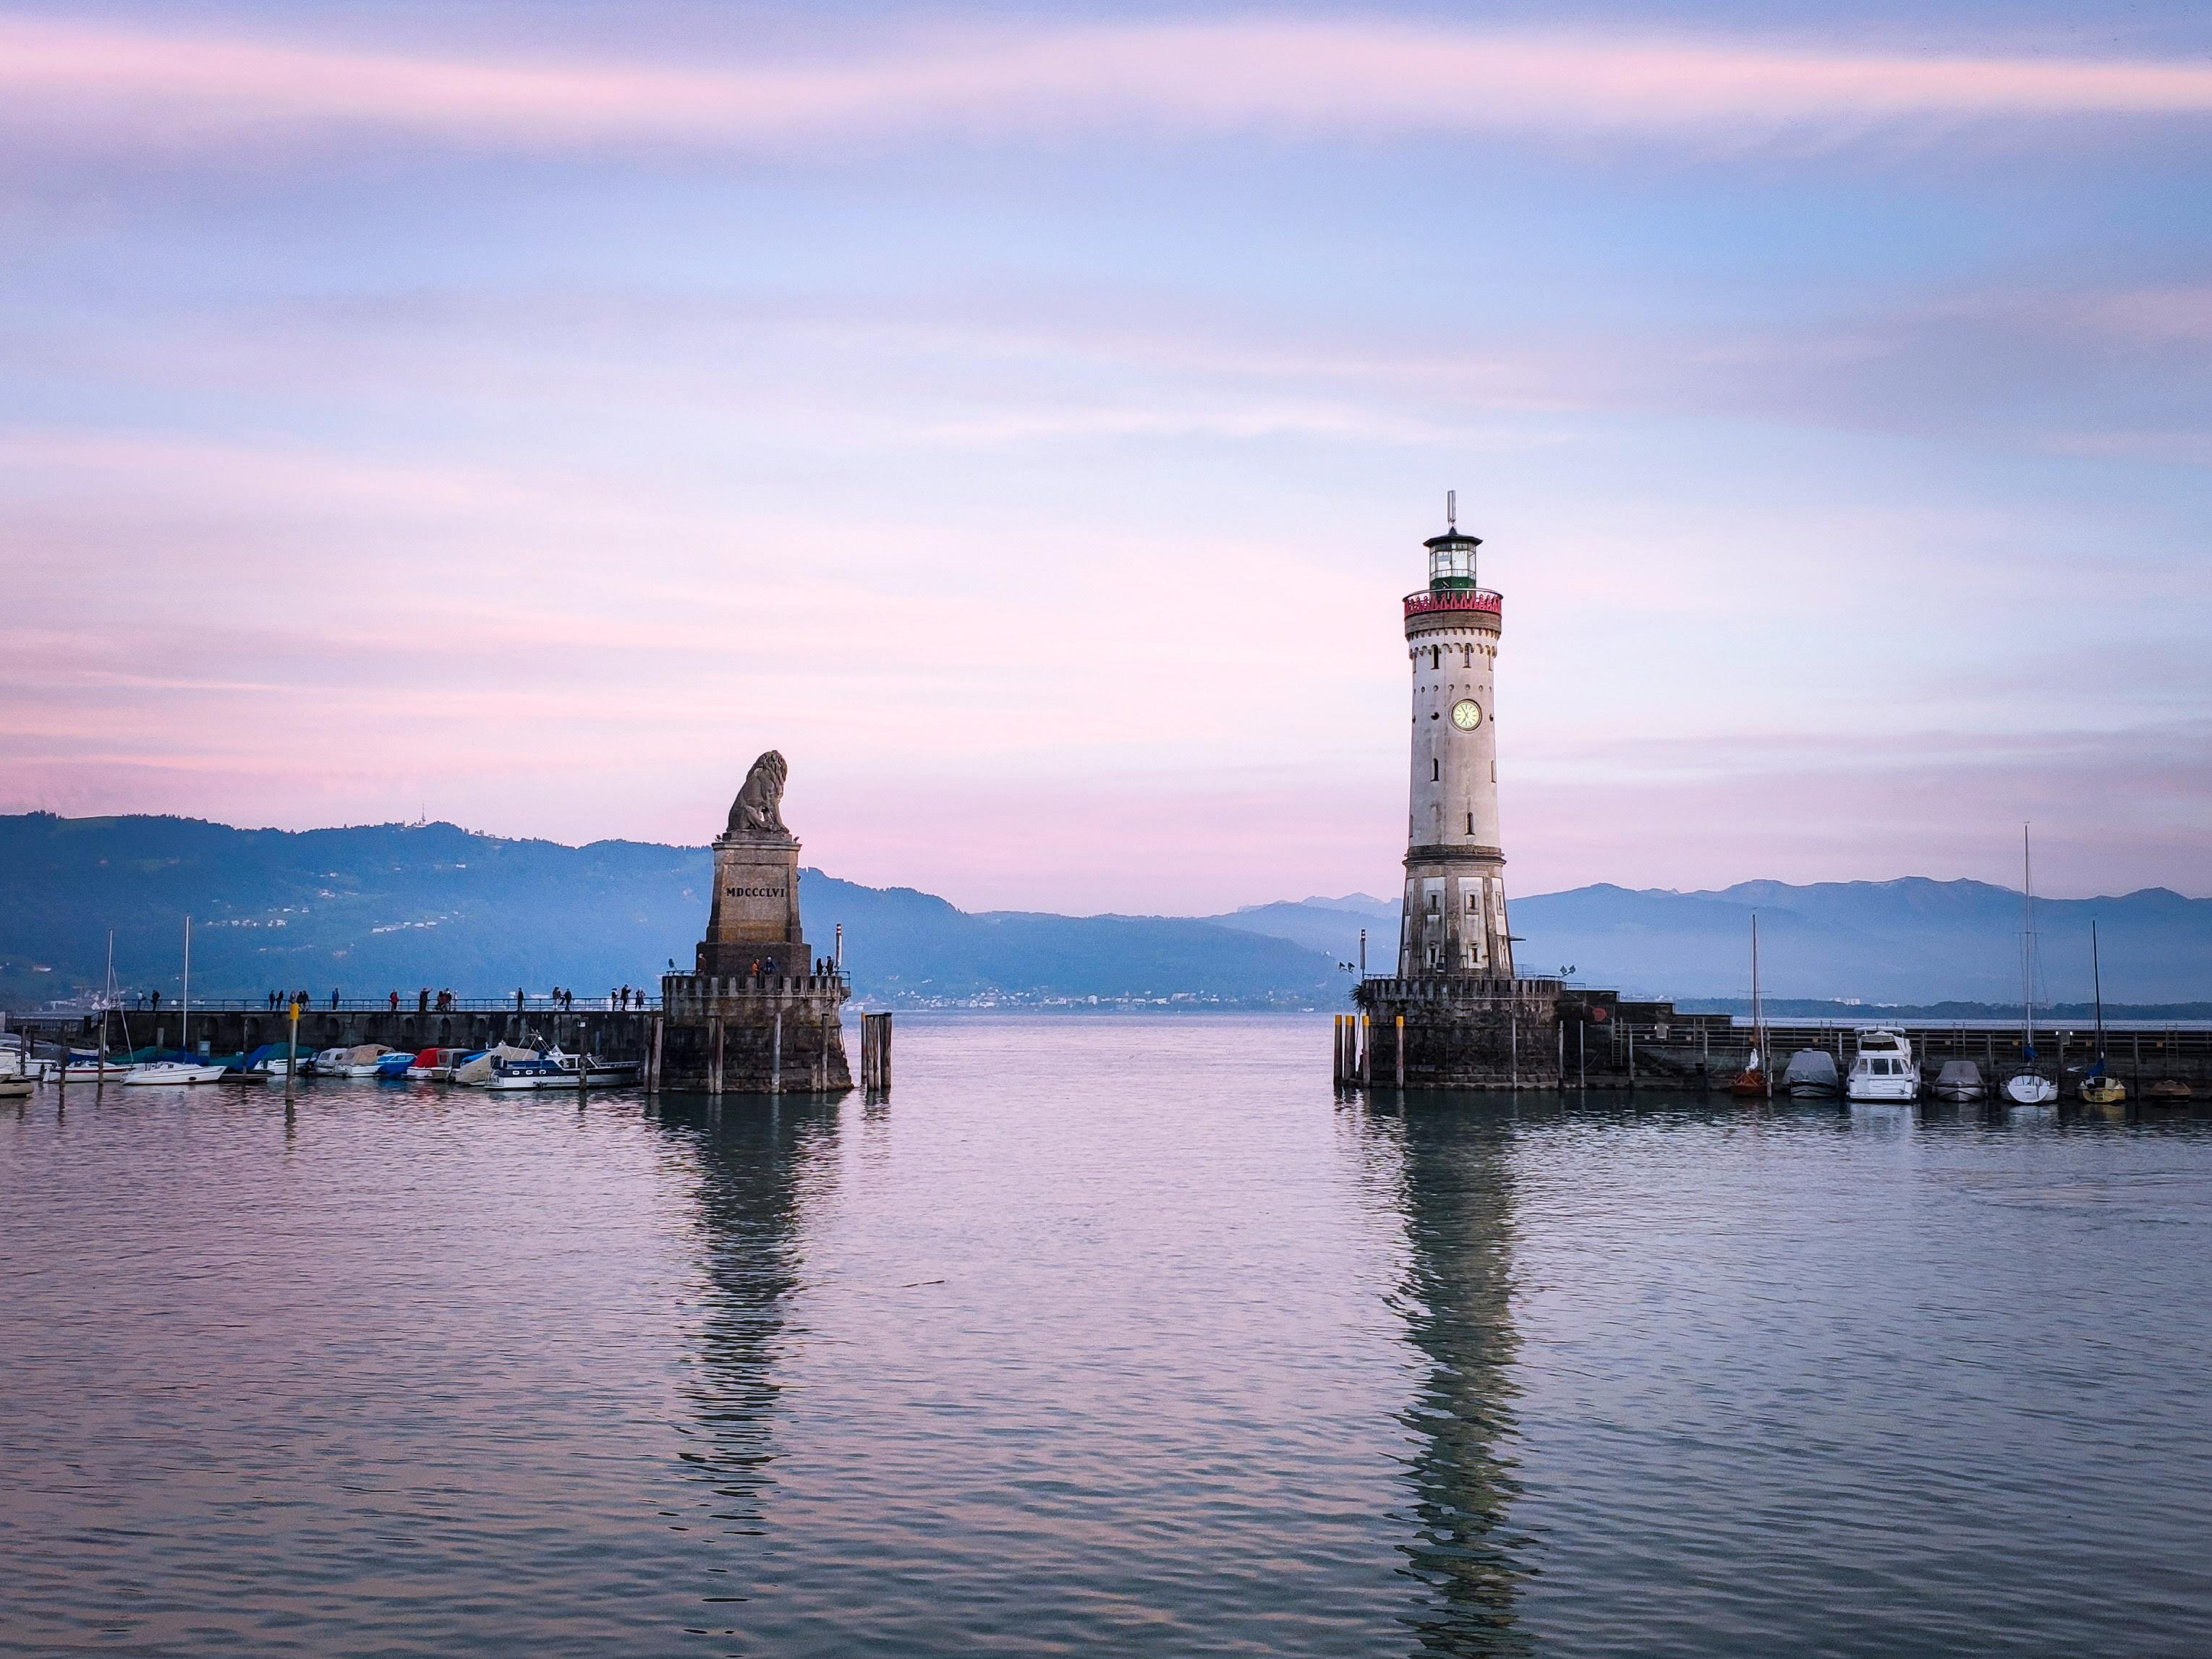 Basel, Bodensee & Munich: Route to memory